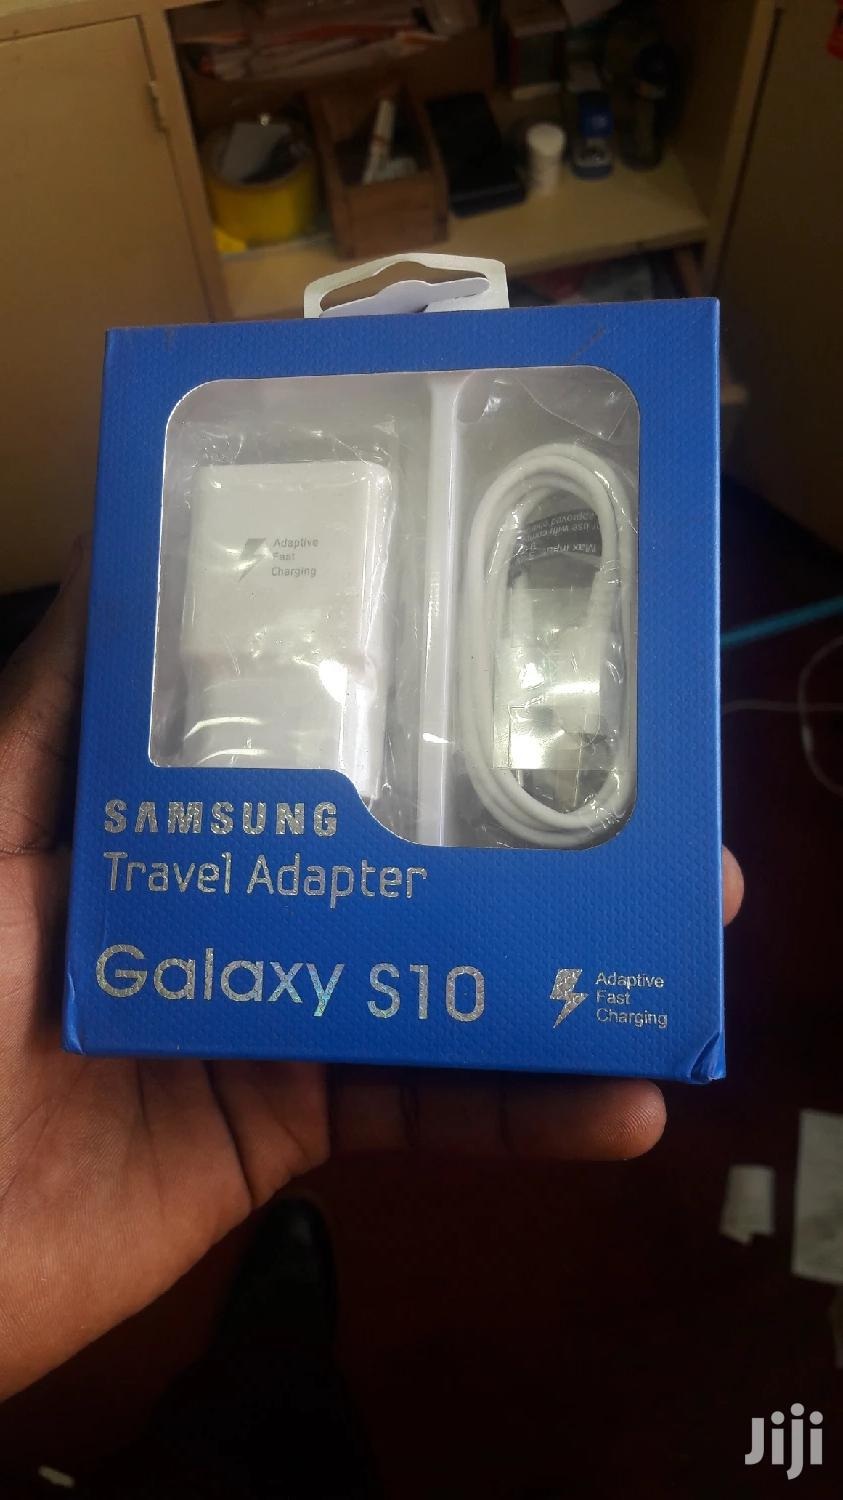 Samsung Charger | Accessories for Mobile Phones & Tablets for sale in Kampala, Central Region, Uganda